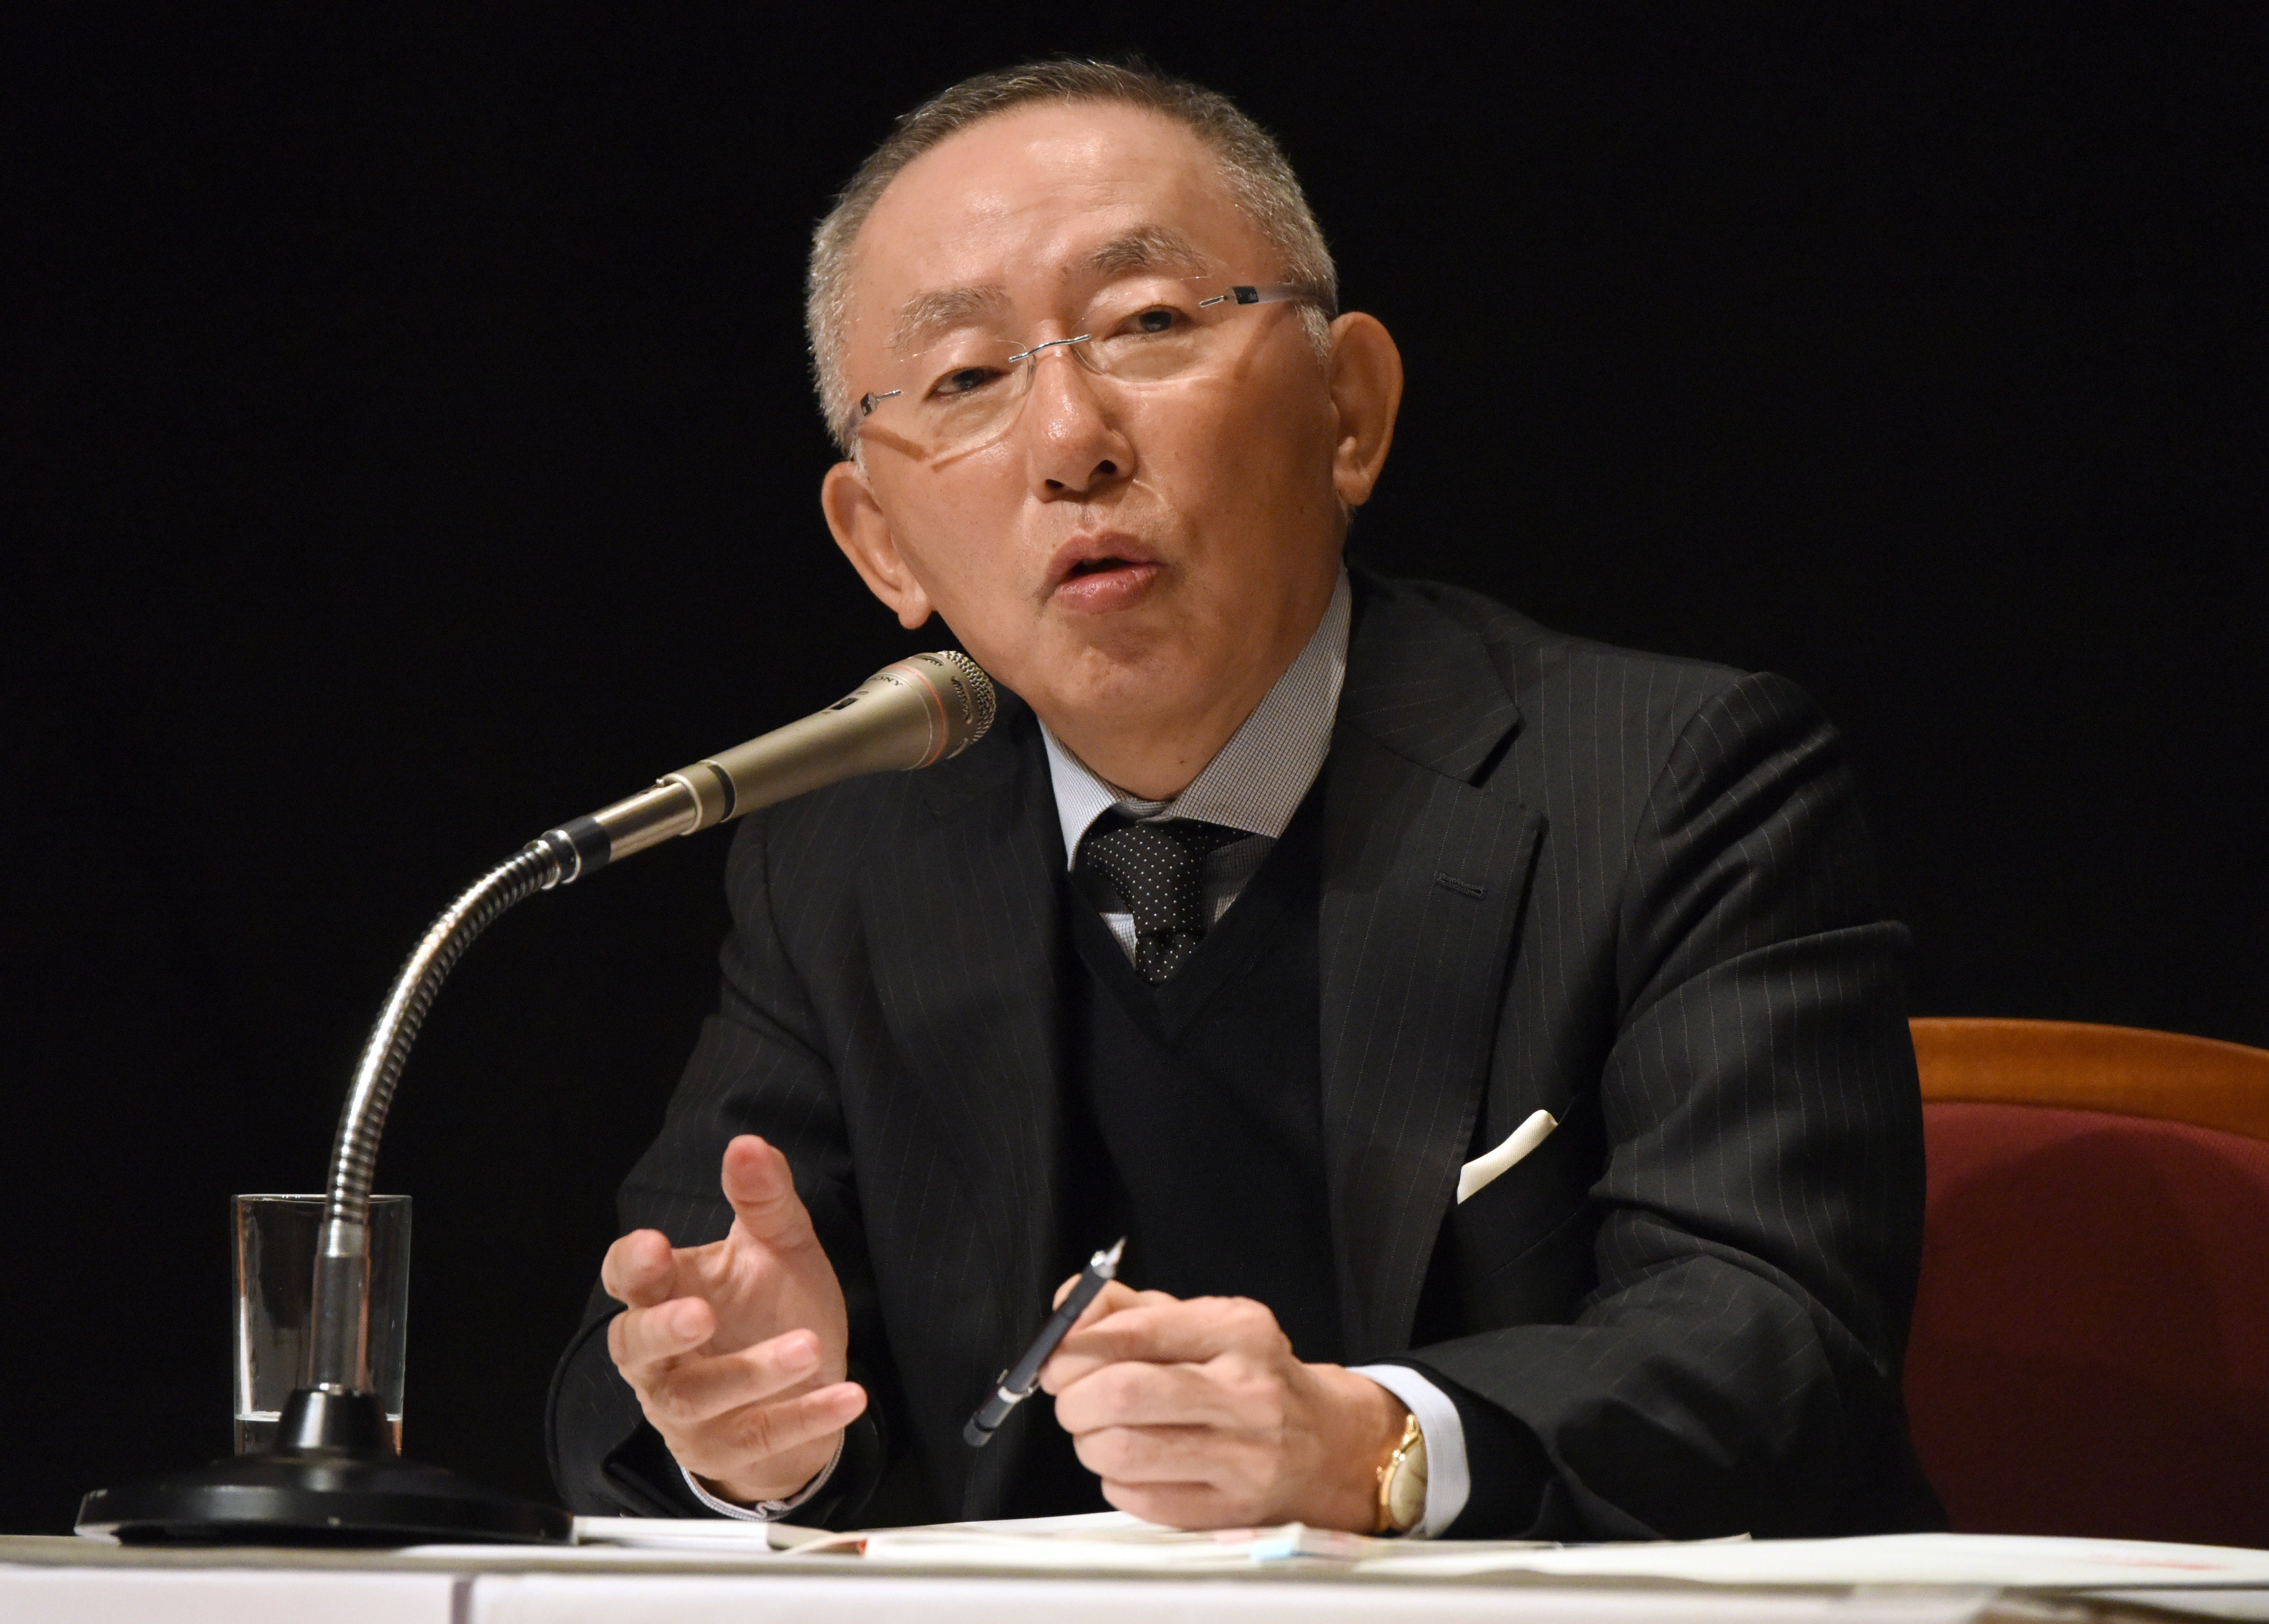 Japan's richest man fears Brexit could turn UK into 'sick man of Europe'